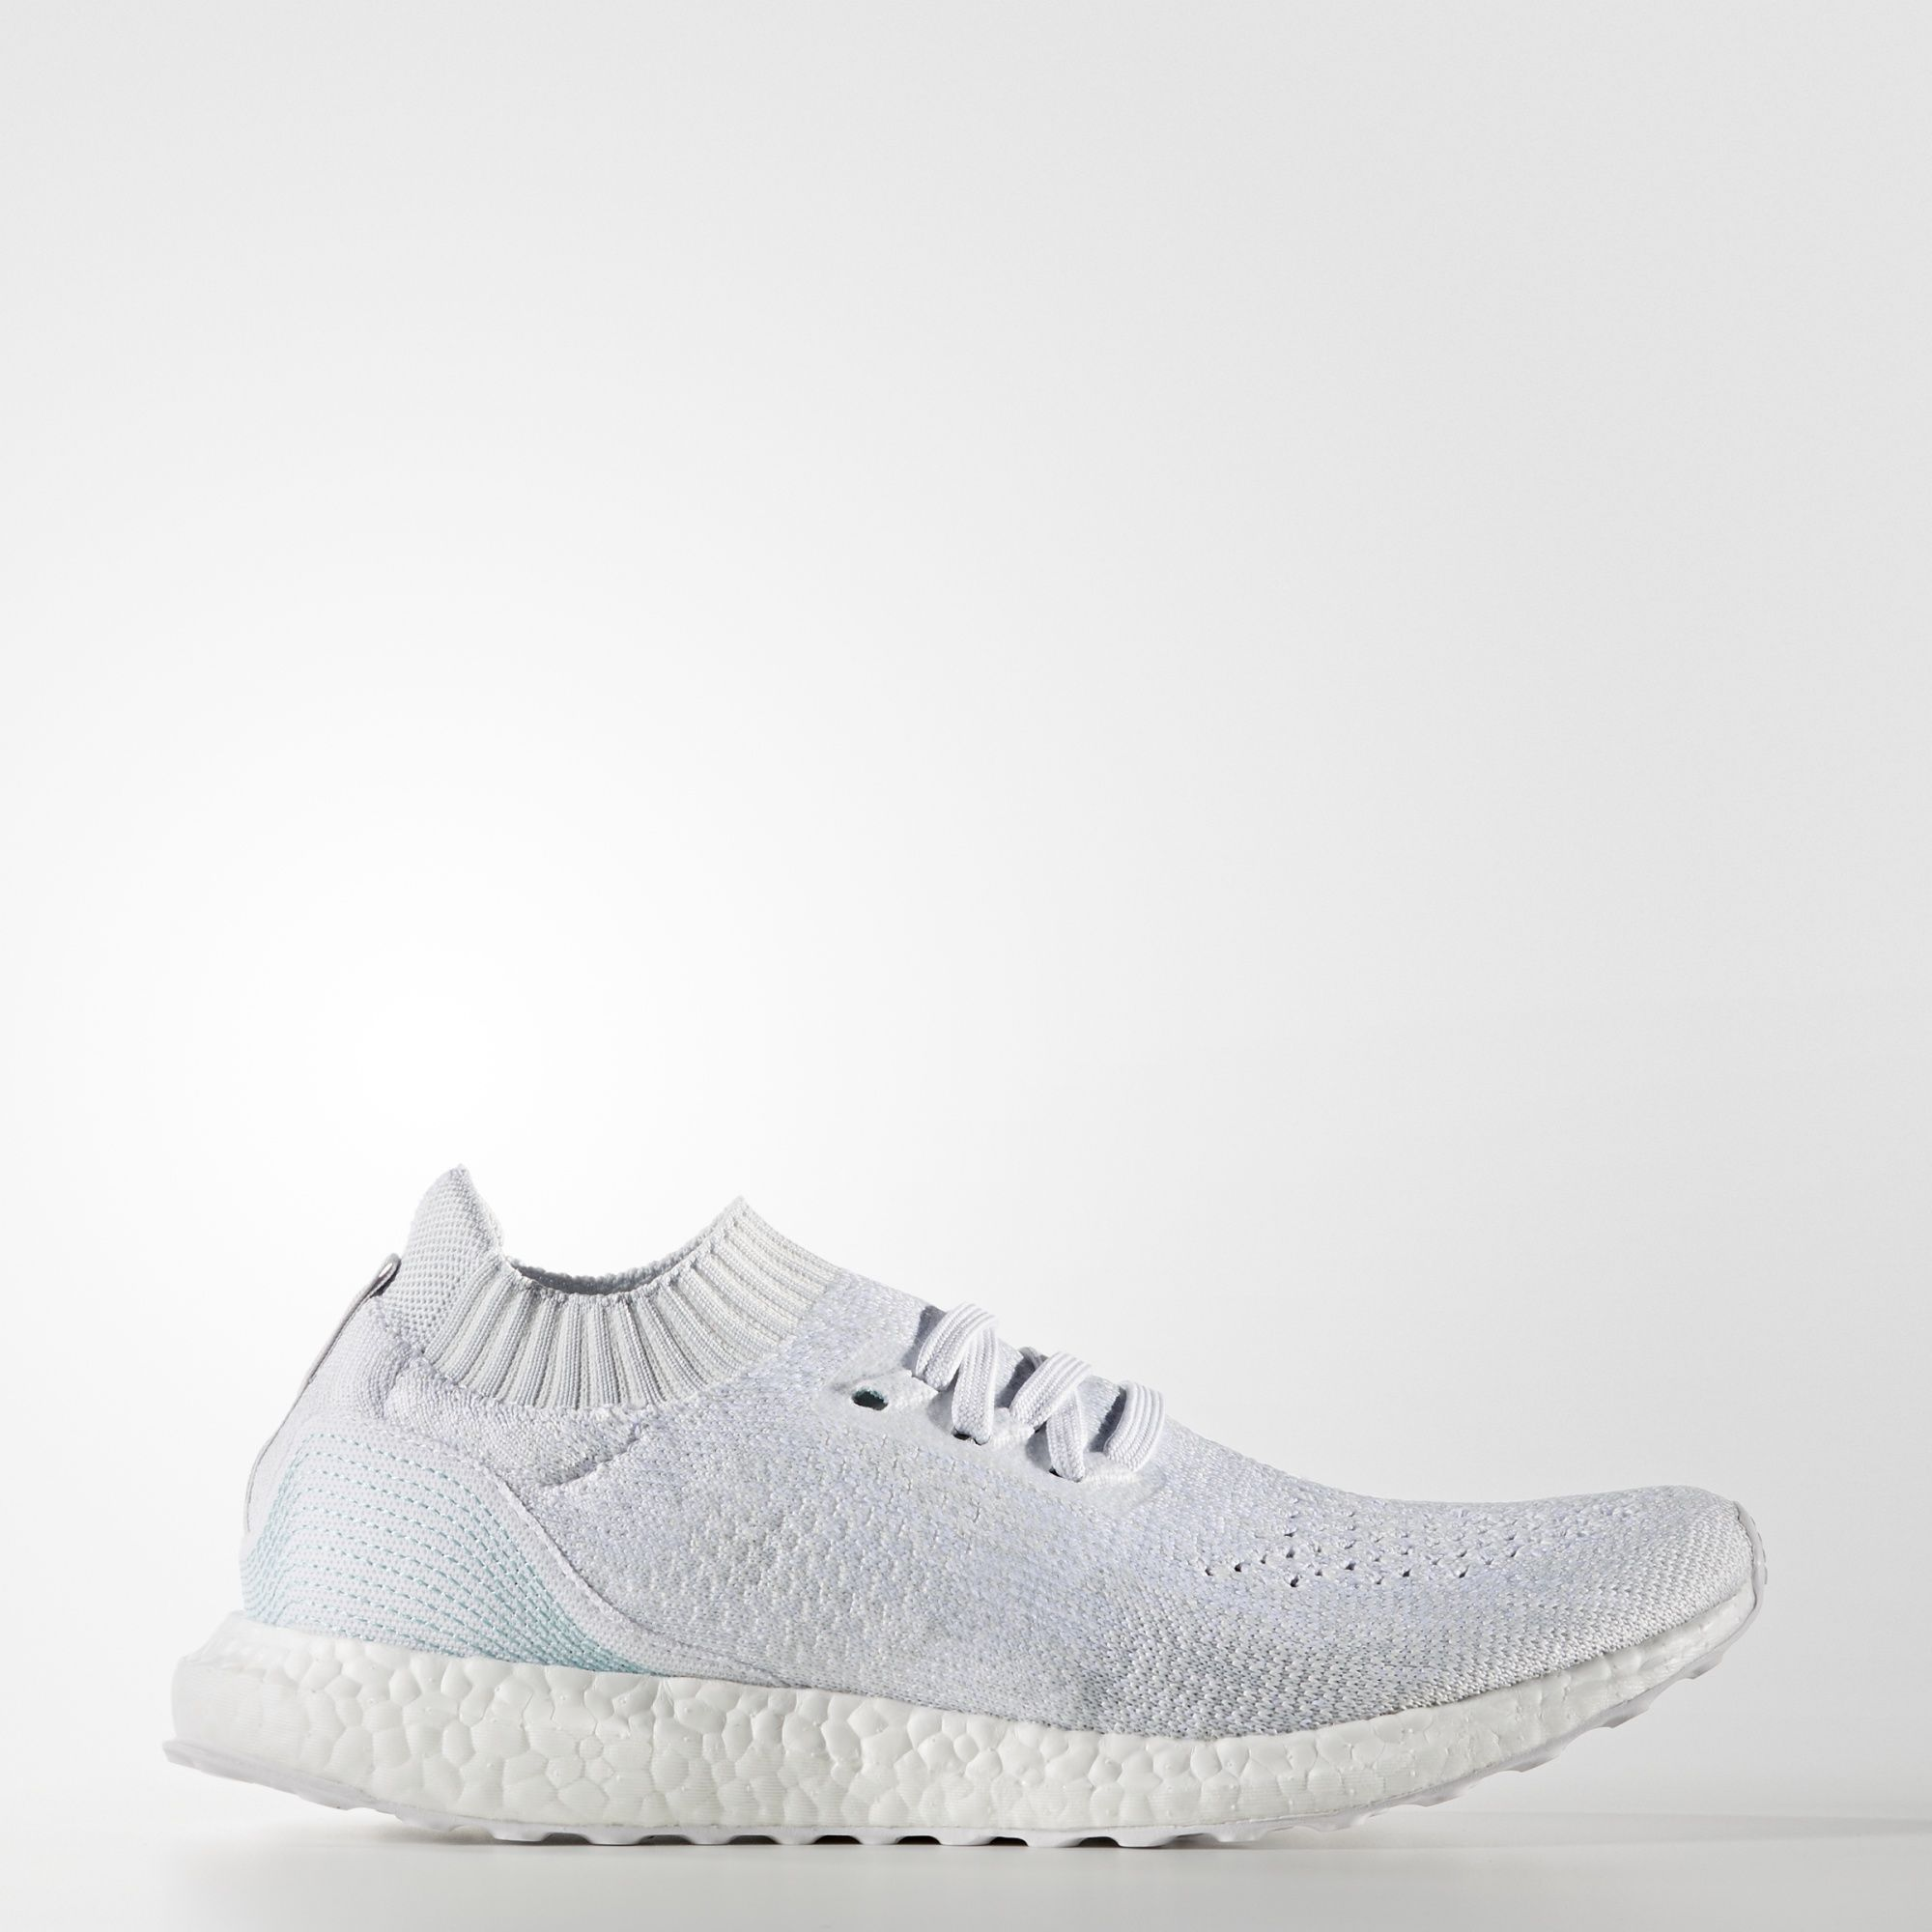 adidas - ULTRABOOST Uncaged Limited Edition Shoes